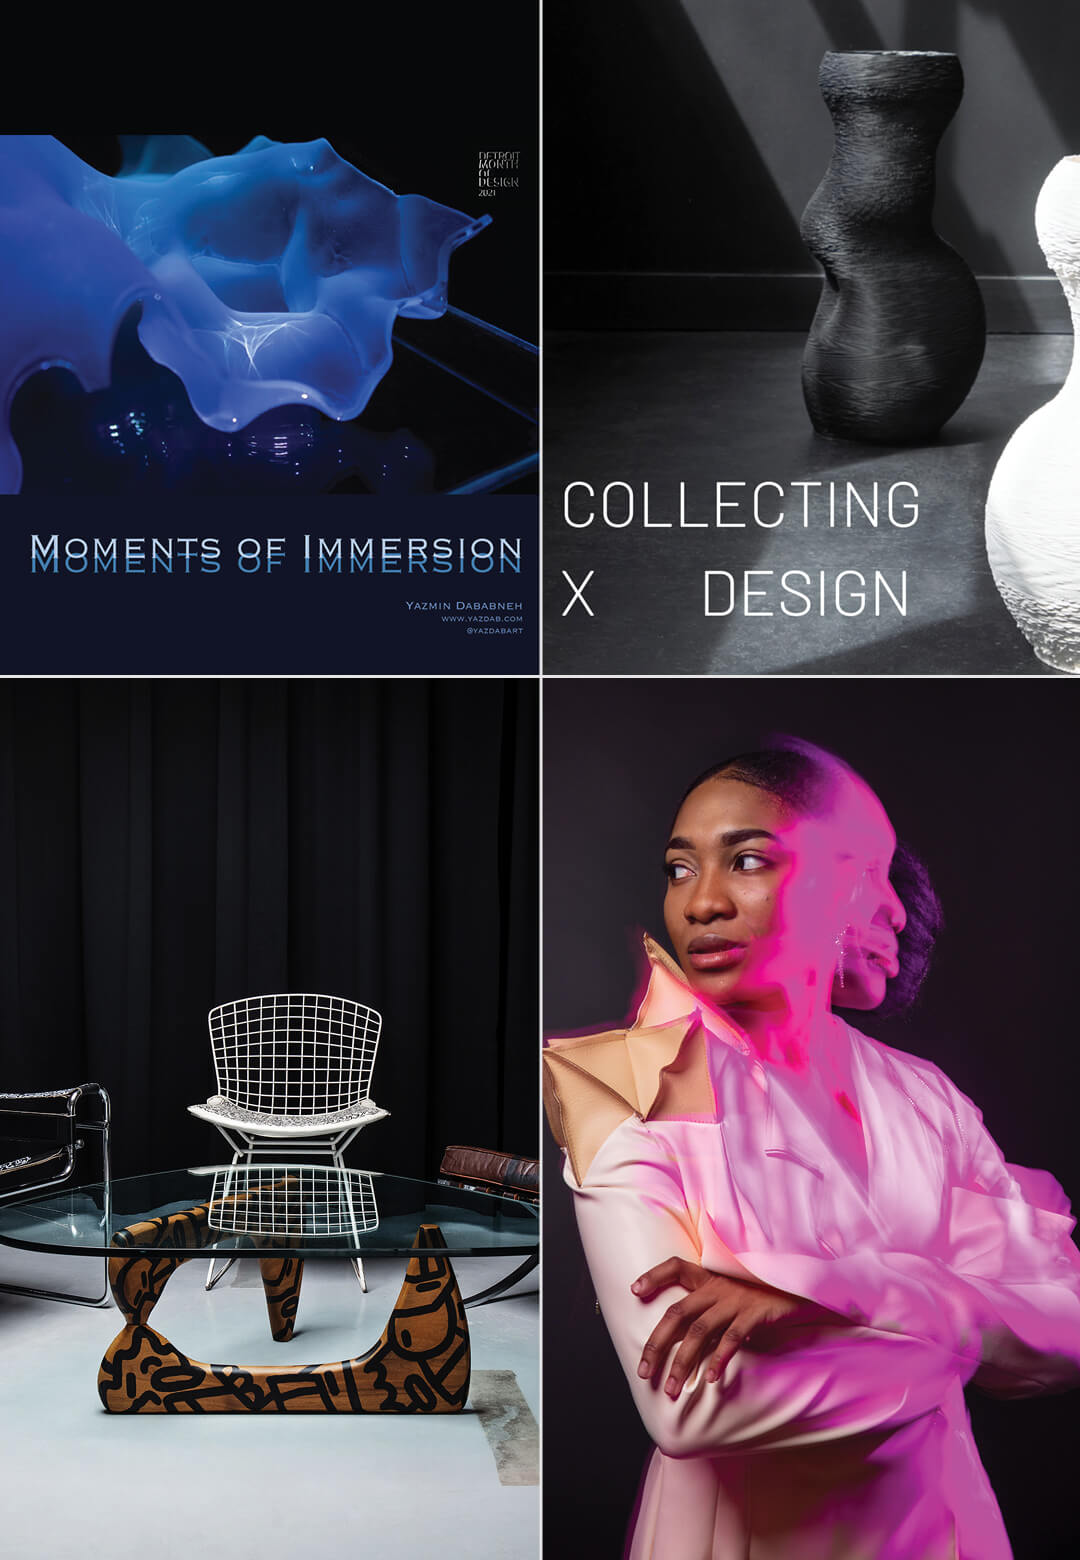 Detroit Month of Design 2021 will unite designers across the city in a month-long event of cultural programming   Detroit Month of Design 2021   STIRworld